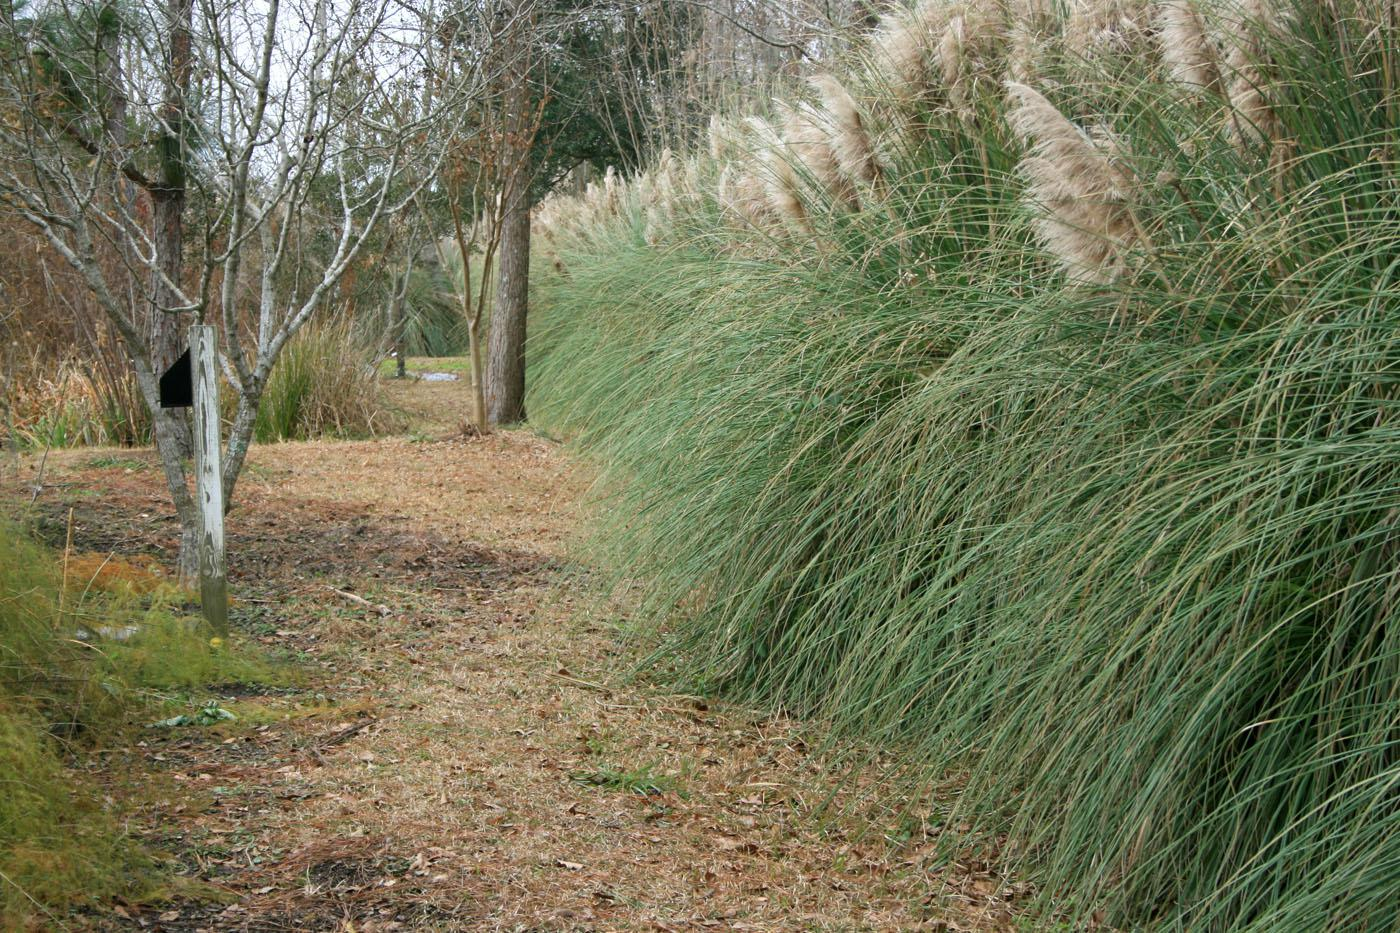 Living screens can block out unpleasant views in landscapes in ways not possible with fences or walls. This row of pampas grass is green and full, even in the winter. (Photo by Gary Bachman)